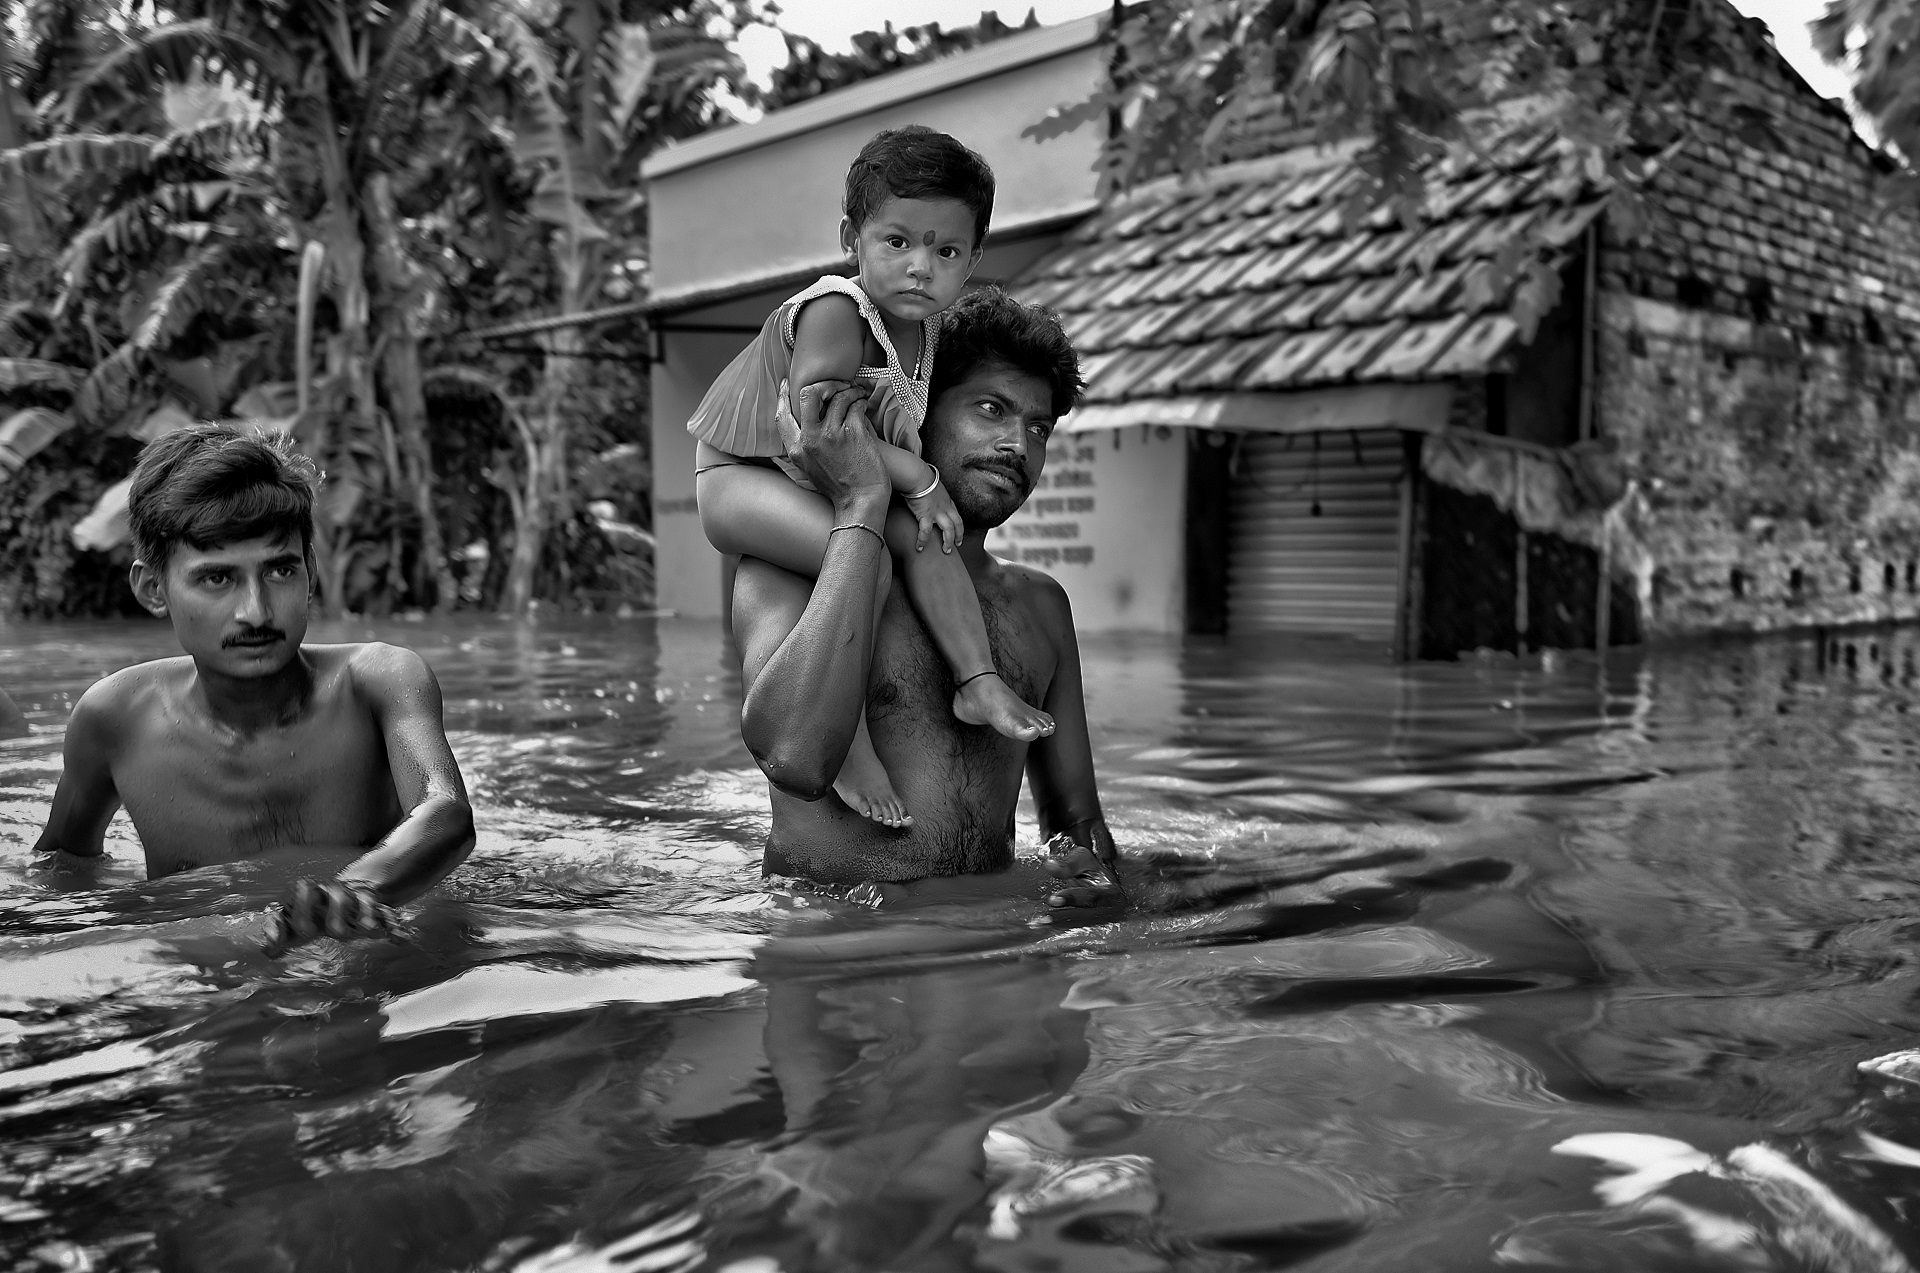 A poor father is coming out from the submerged village of Howrah with his child on shoulder and going to the higher place for survival.